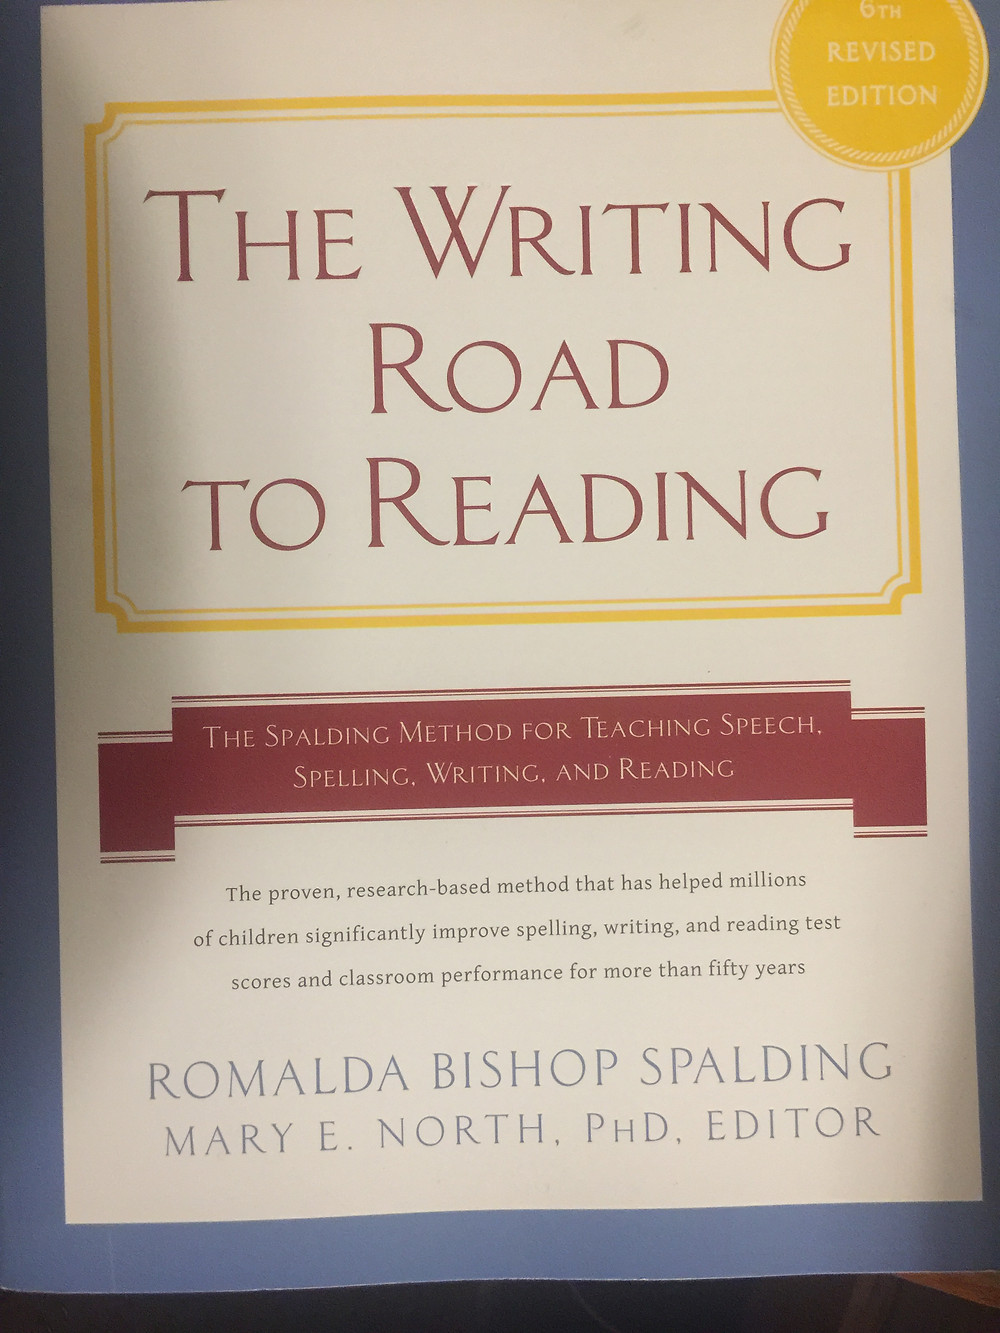 Picture of the cover of the book The Writing Road to Reading 6th edition